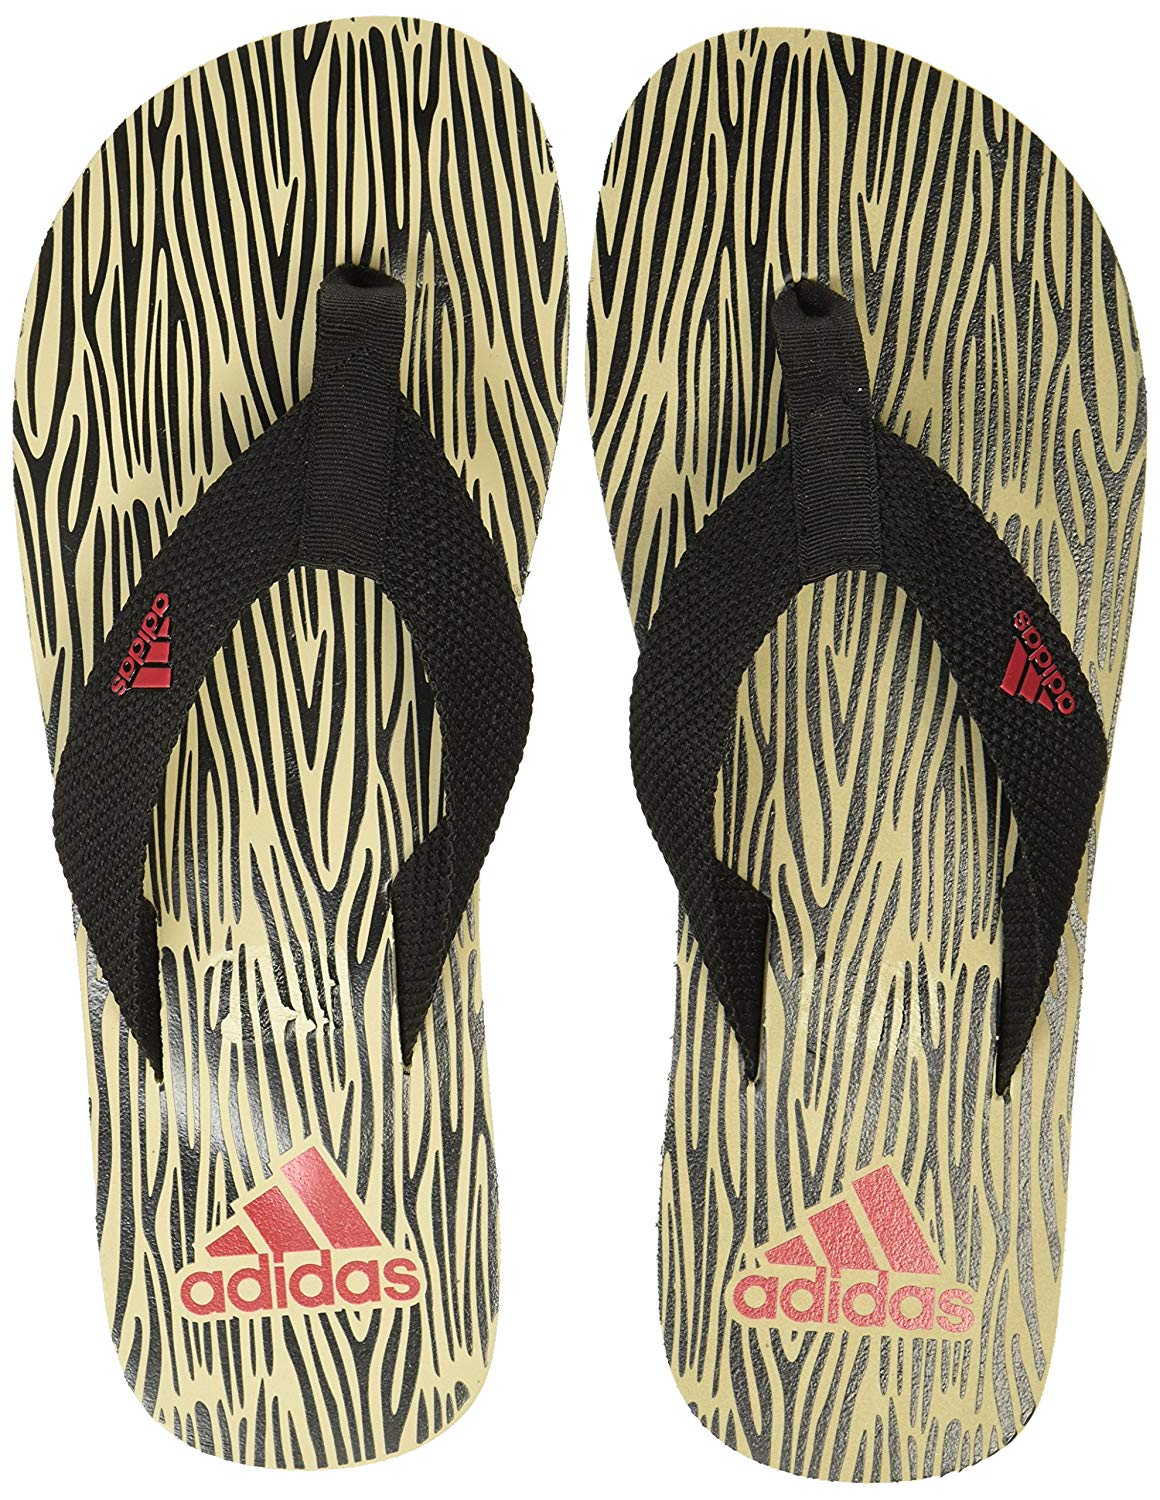 Calendario septiembre Constituir  Adidas Men's Aril Attack 2017 M House Slippers Offer on Amazon India Price  Rs. 529 | INRDeals.